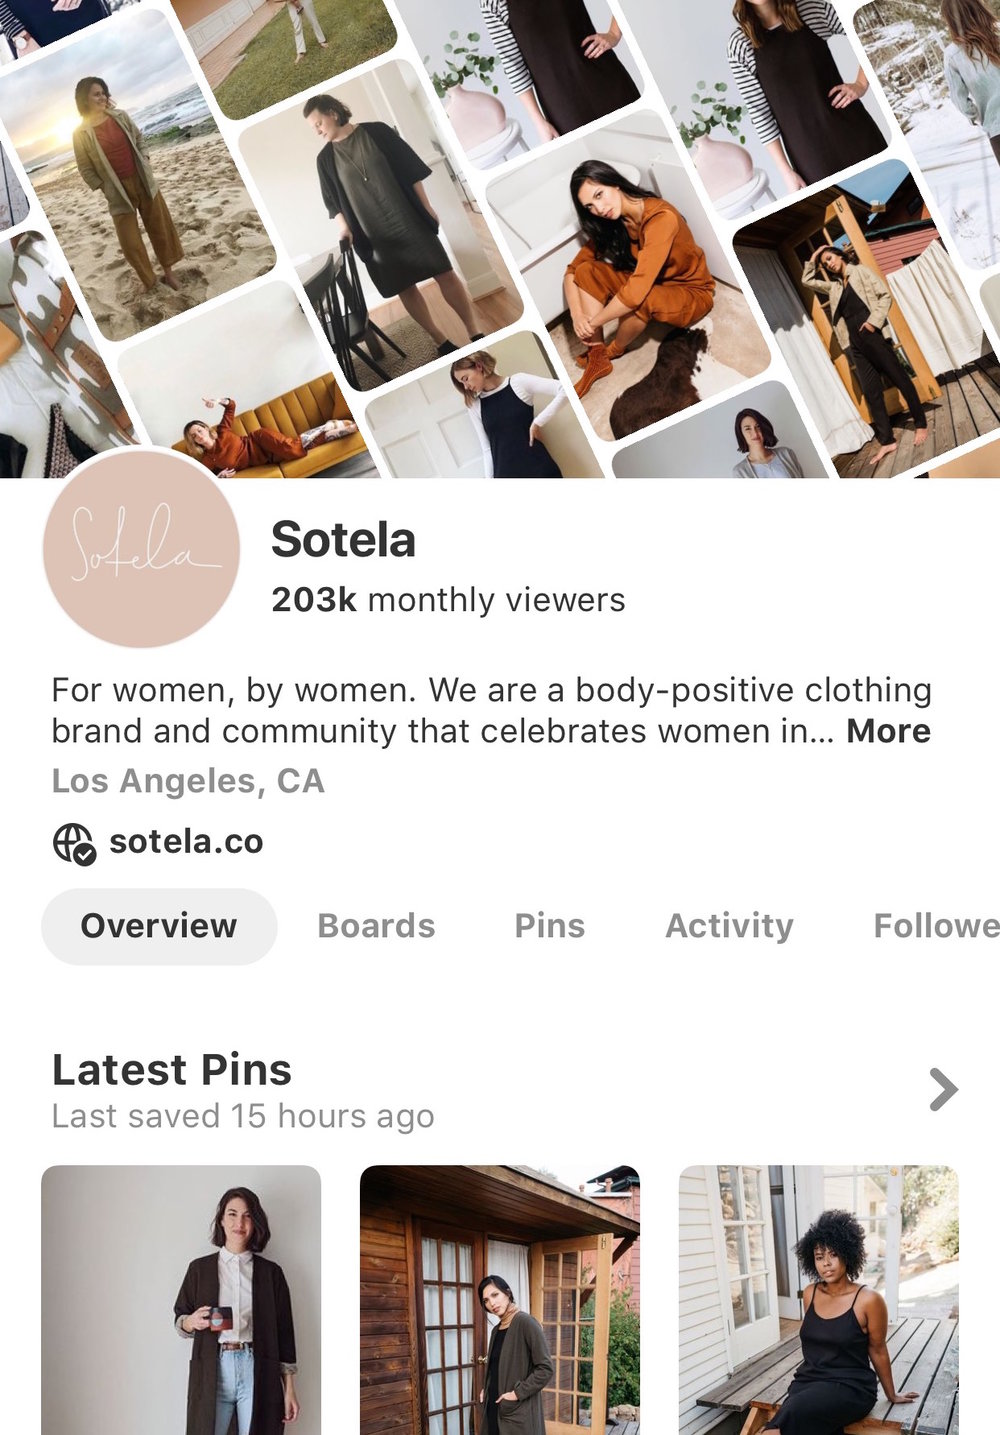 sotela pinterest - Sotela, a body-postive clothing brand for the everyday woman, already had a pretty great Pinterest audience. We were able put strategy behind their great content, and grow their Pinterest audience by 900% in 5 months.21,000 - 203,000 viewers in 5 months